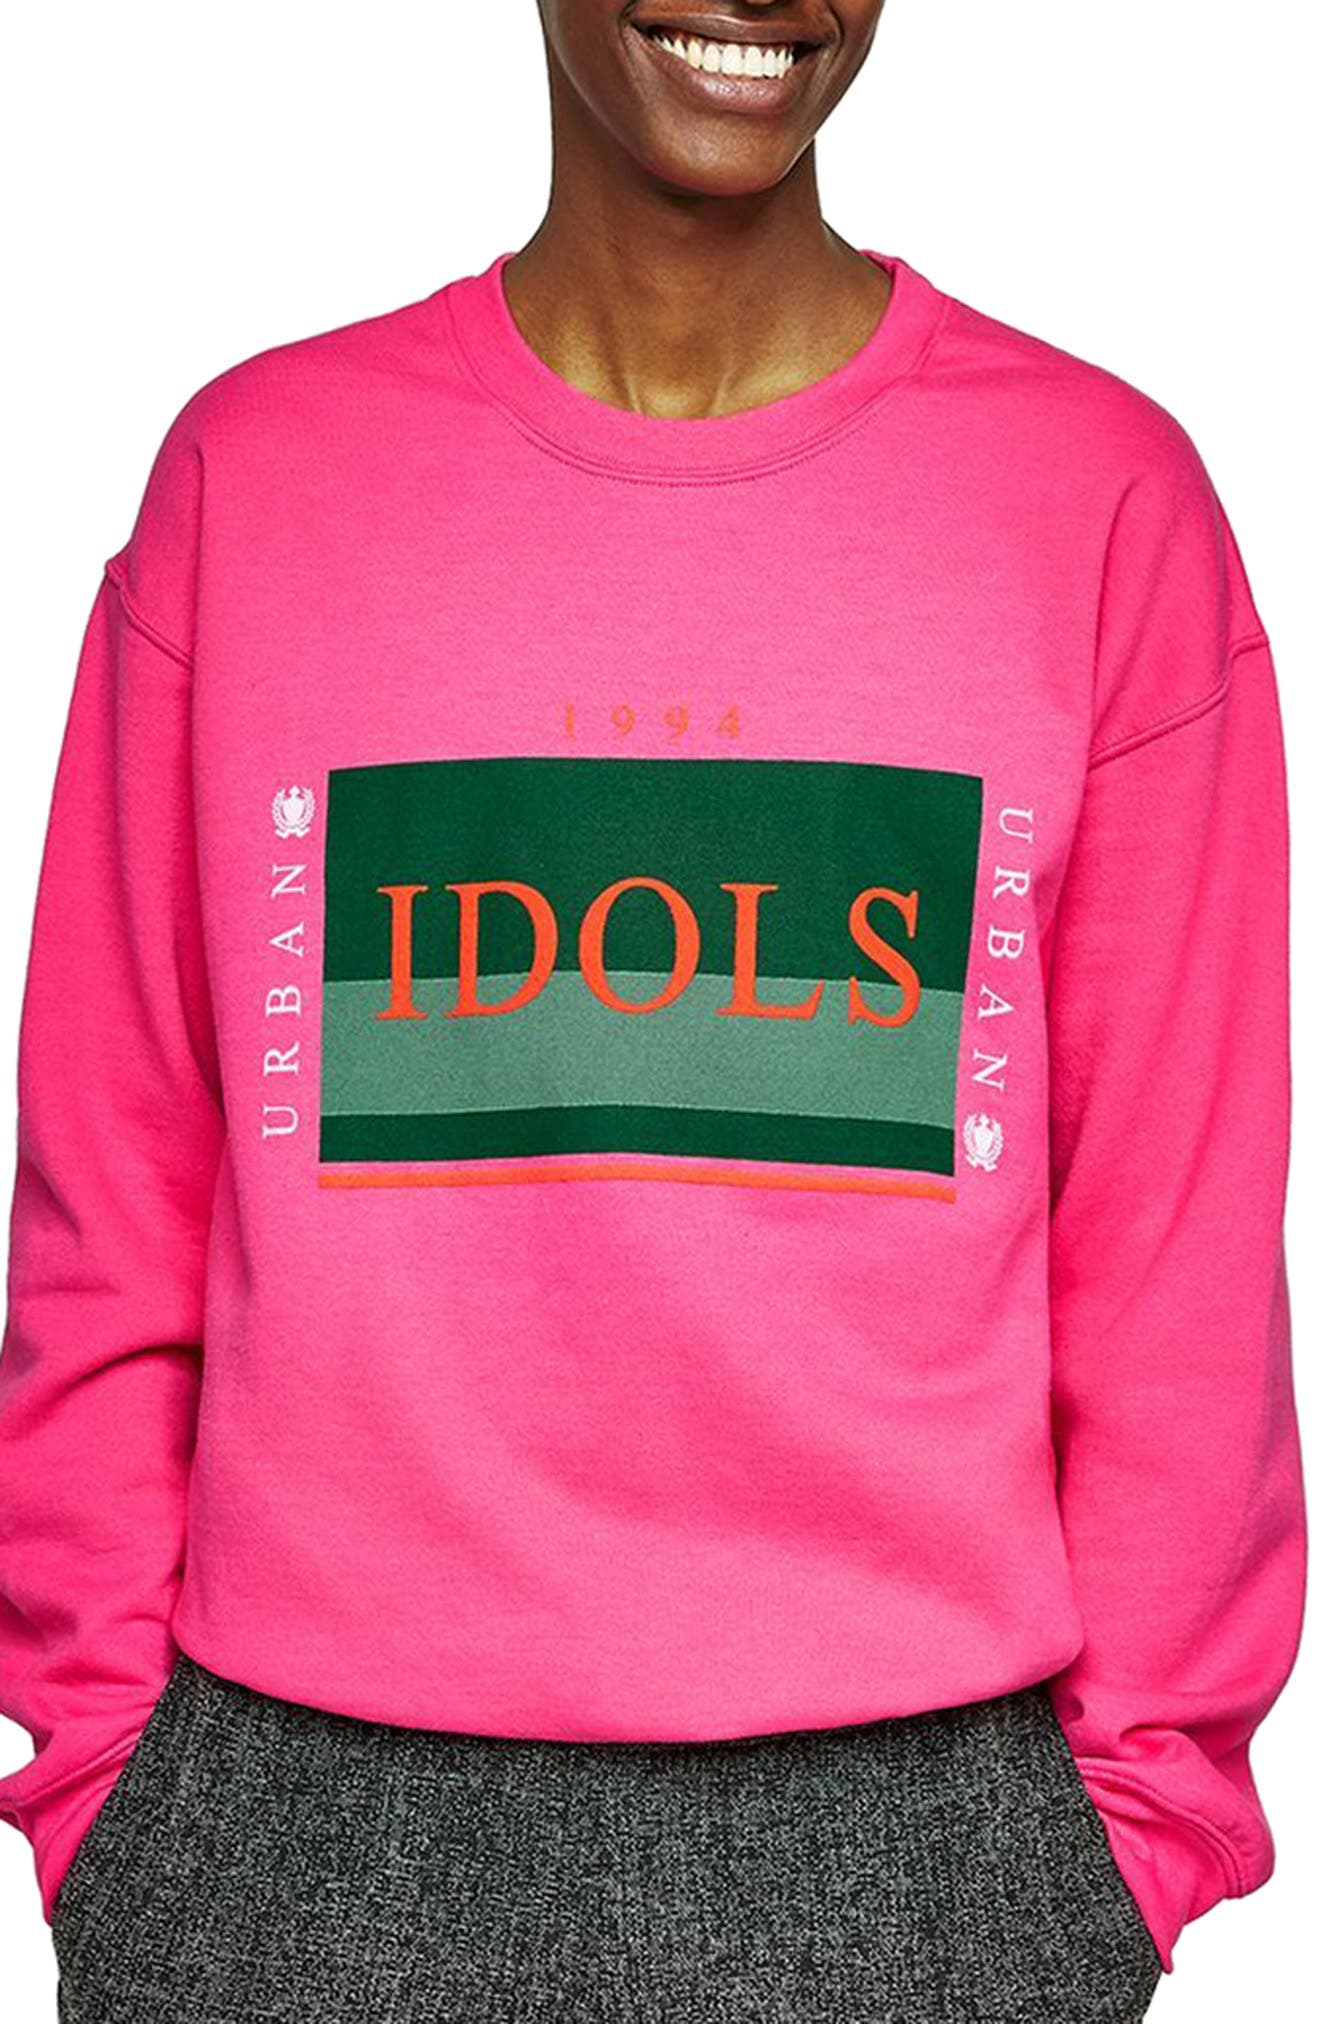 Topman Urban Idols Graphic Sweatshirt